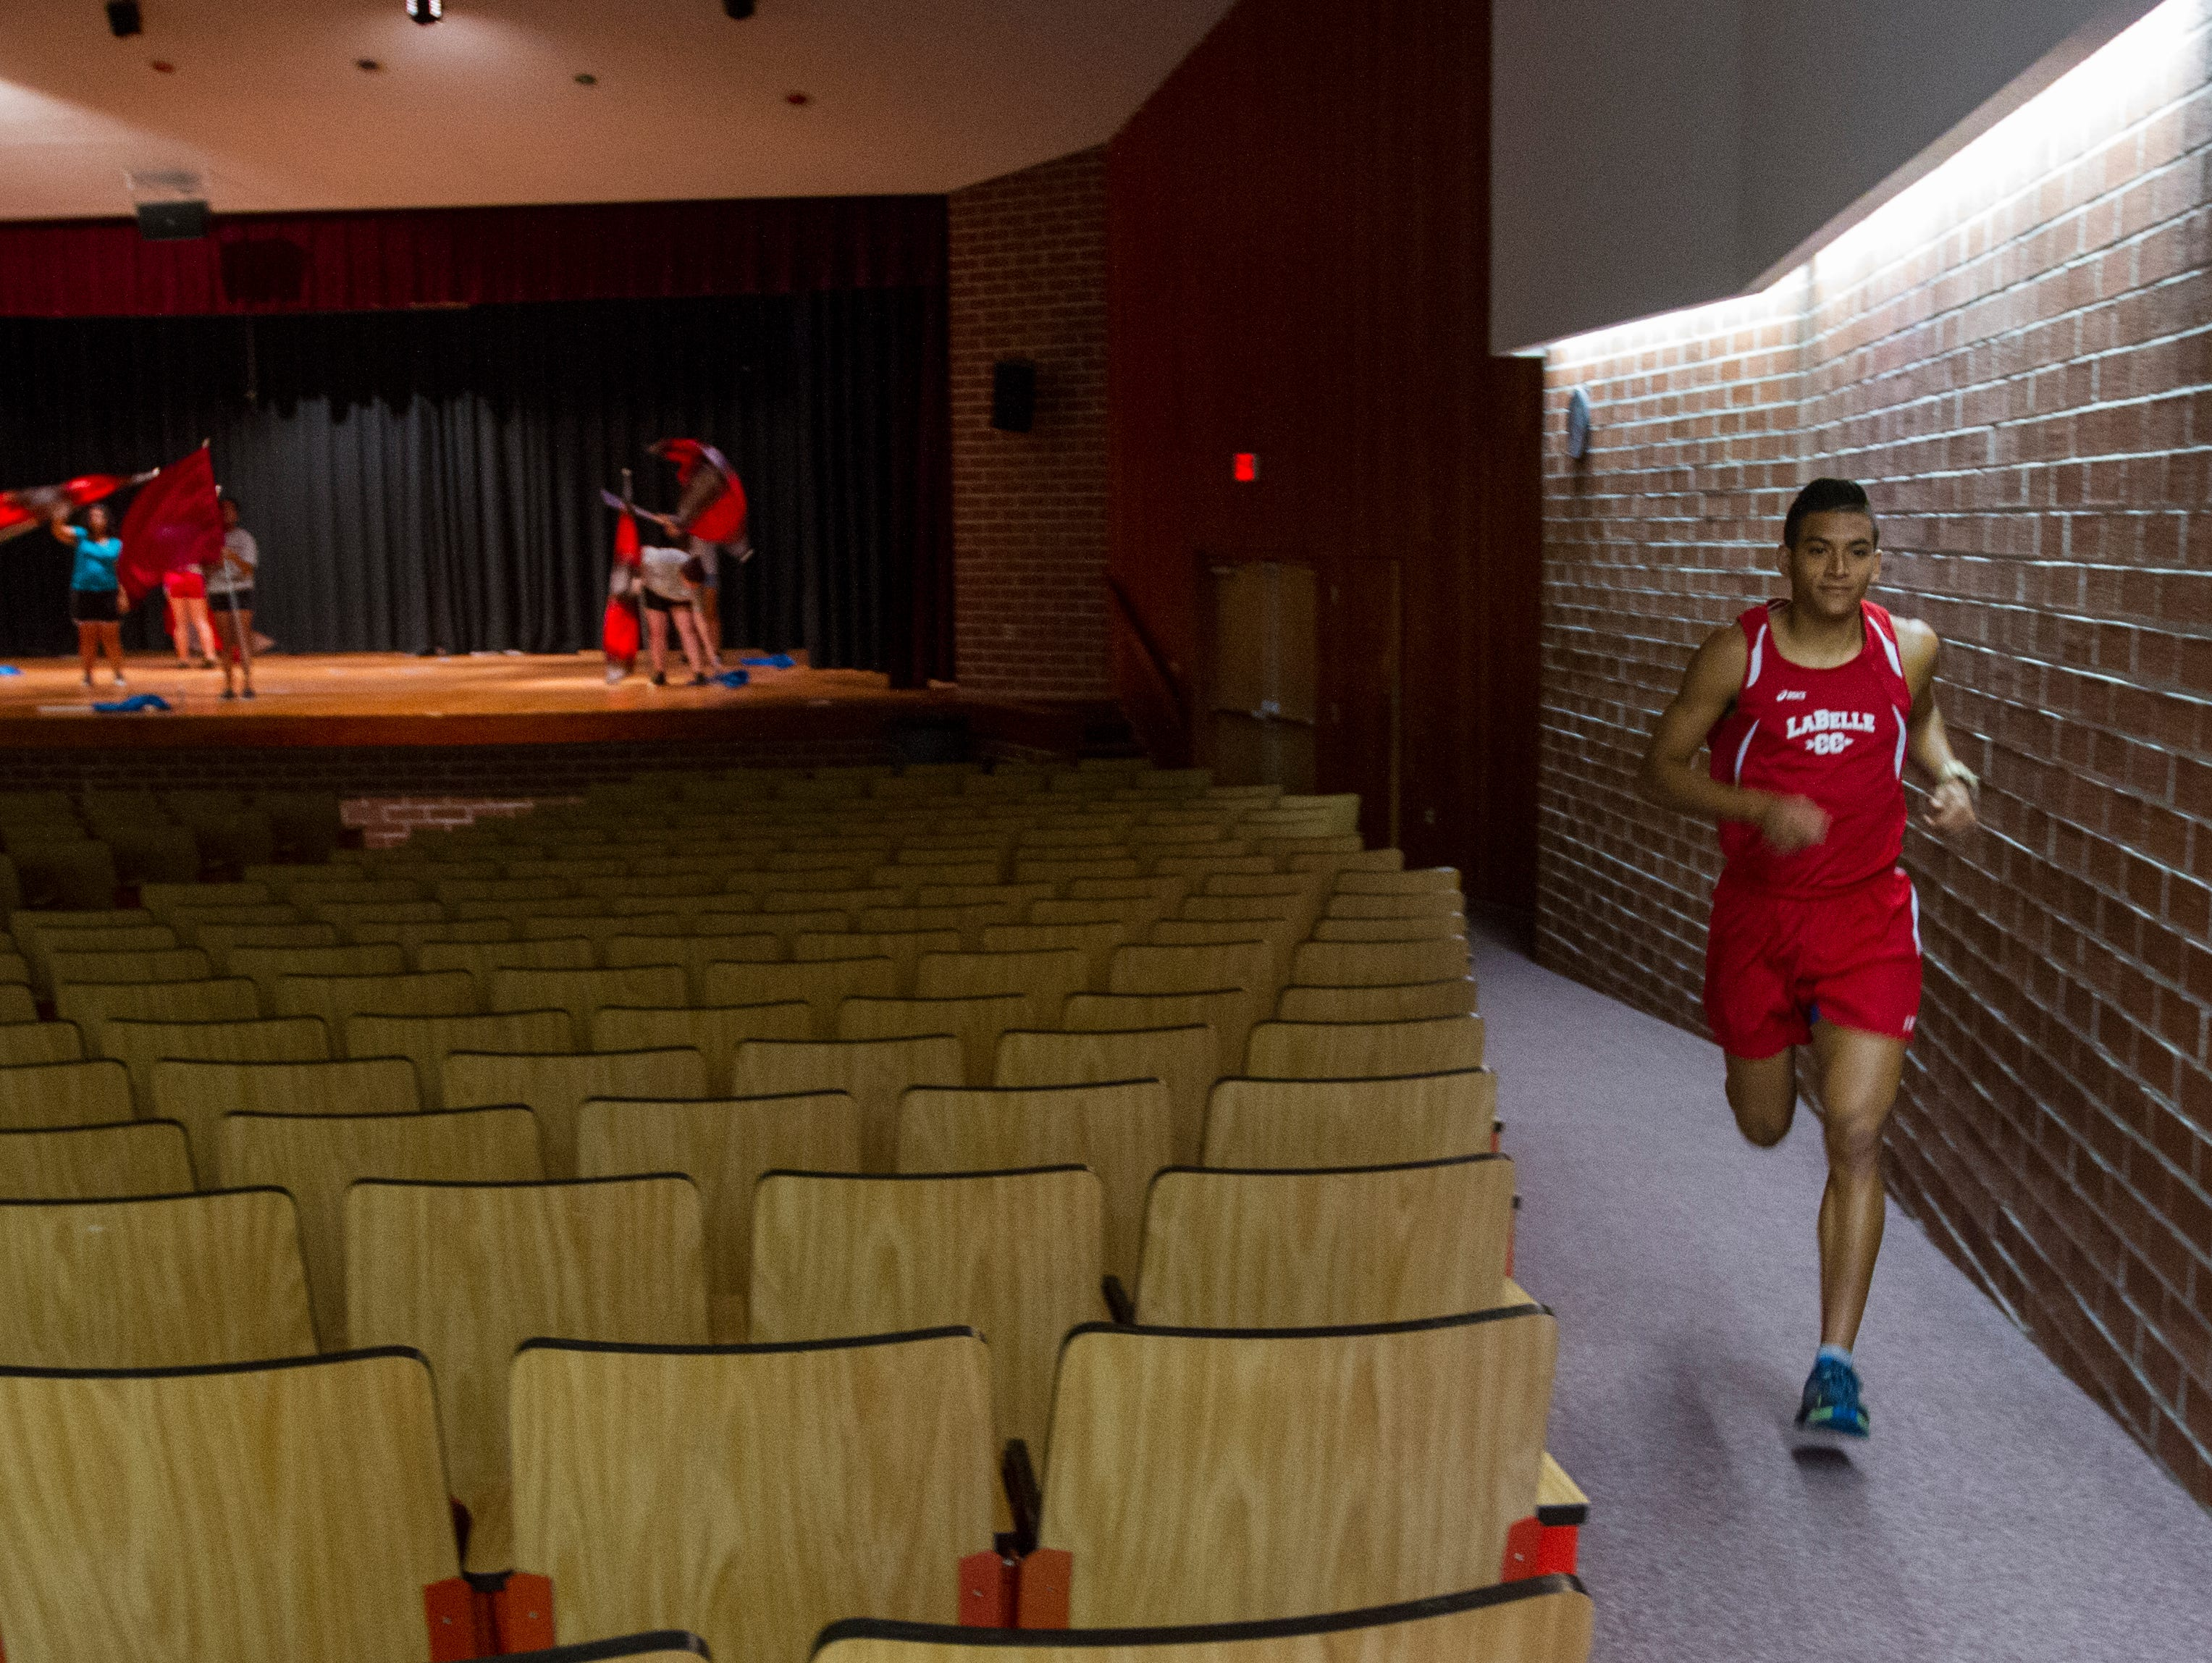 Cuban native Yoan Prado, 19, runs through his school's auditorium Tuesday afternoon, as students had to take shelter during a lighting storm warning. Prado, a cross country runner at LaBelle High School, is one of the best Cowboy runners and a top 10 state contender. He started at the Hendry county school two years ago.